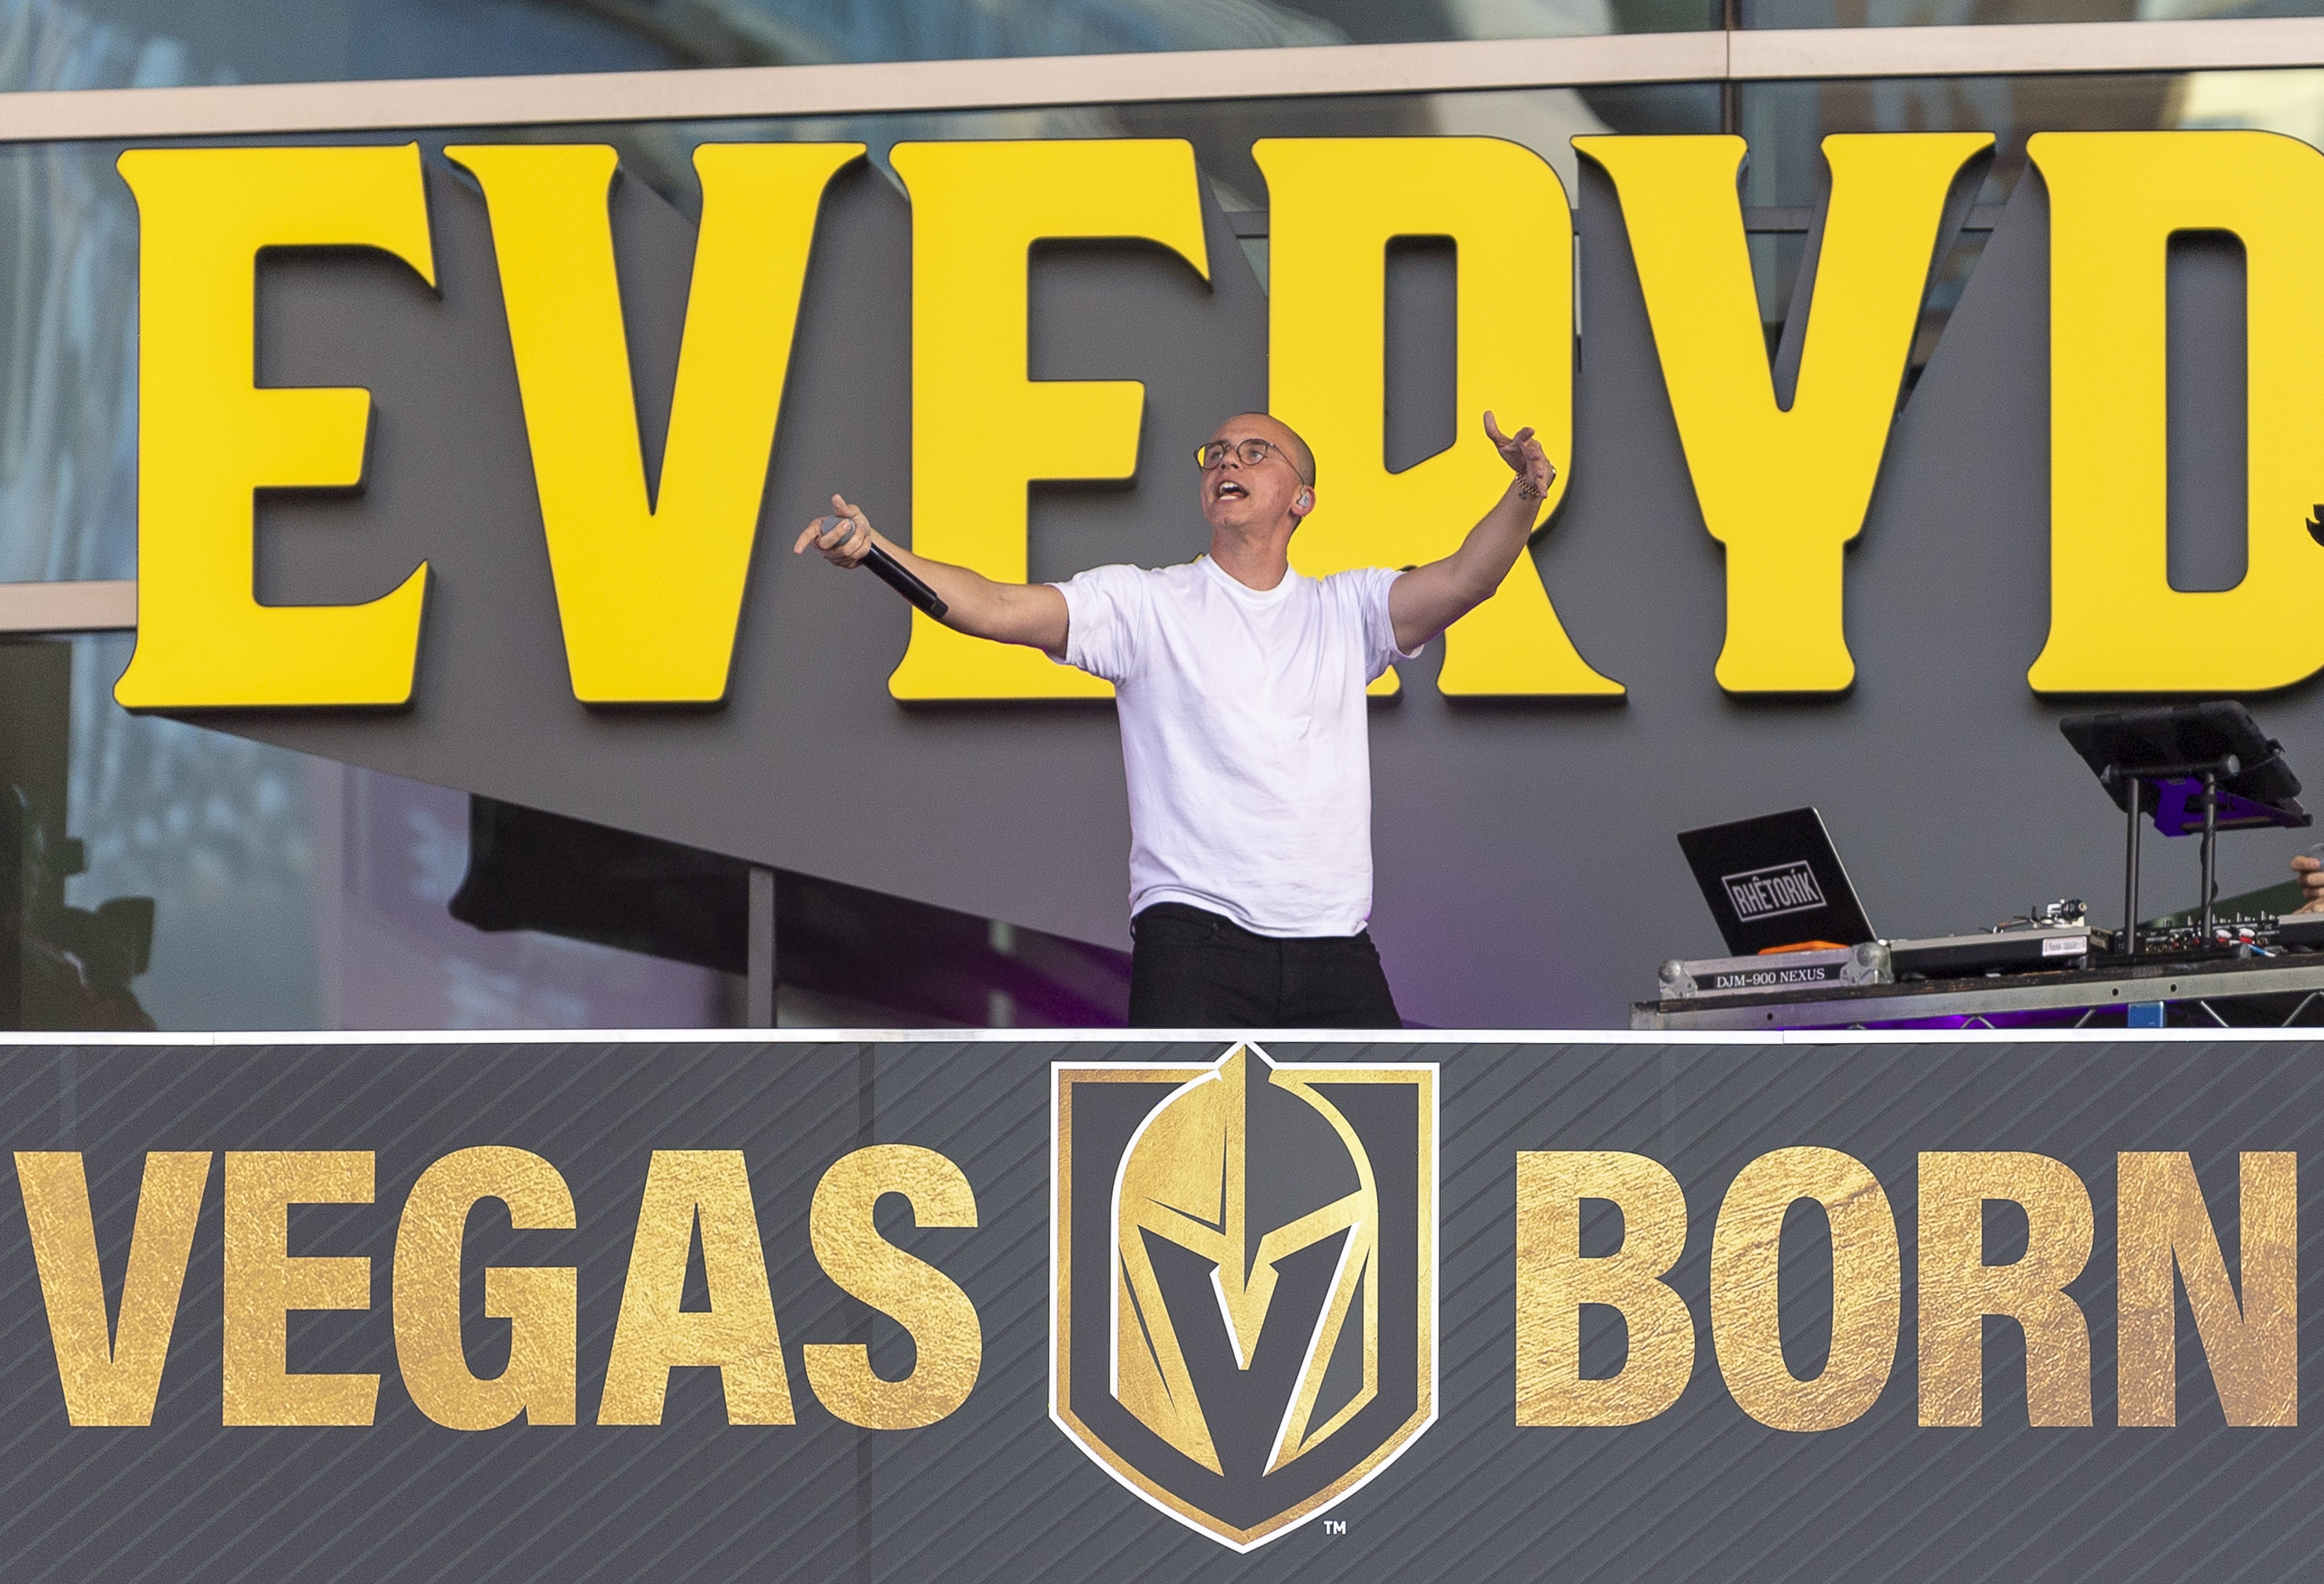 Rapper Logic performs for the crowd in the pre-game celebration at Toshiba Plaza as the Vegas Golden Knights prepare to meet the Los Angeles Kings in the first quarterfinal game of the NHL Stanley Cup Playoffs at T-Mobile Arena in Las Vegas on Wednesday, April 11, 2018.  CREDIT: Mark Damon/Las Vegas News Bureau